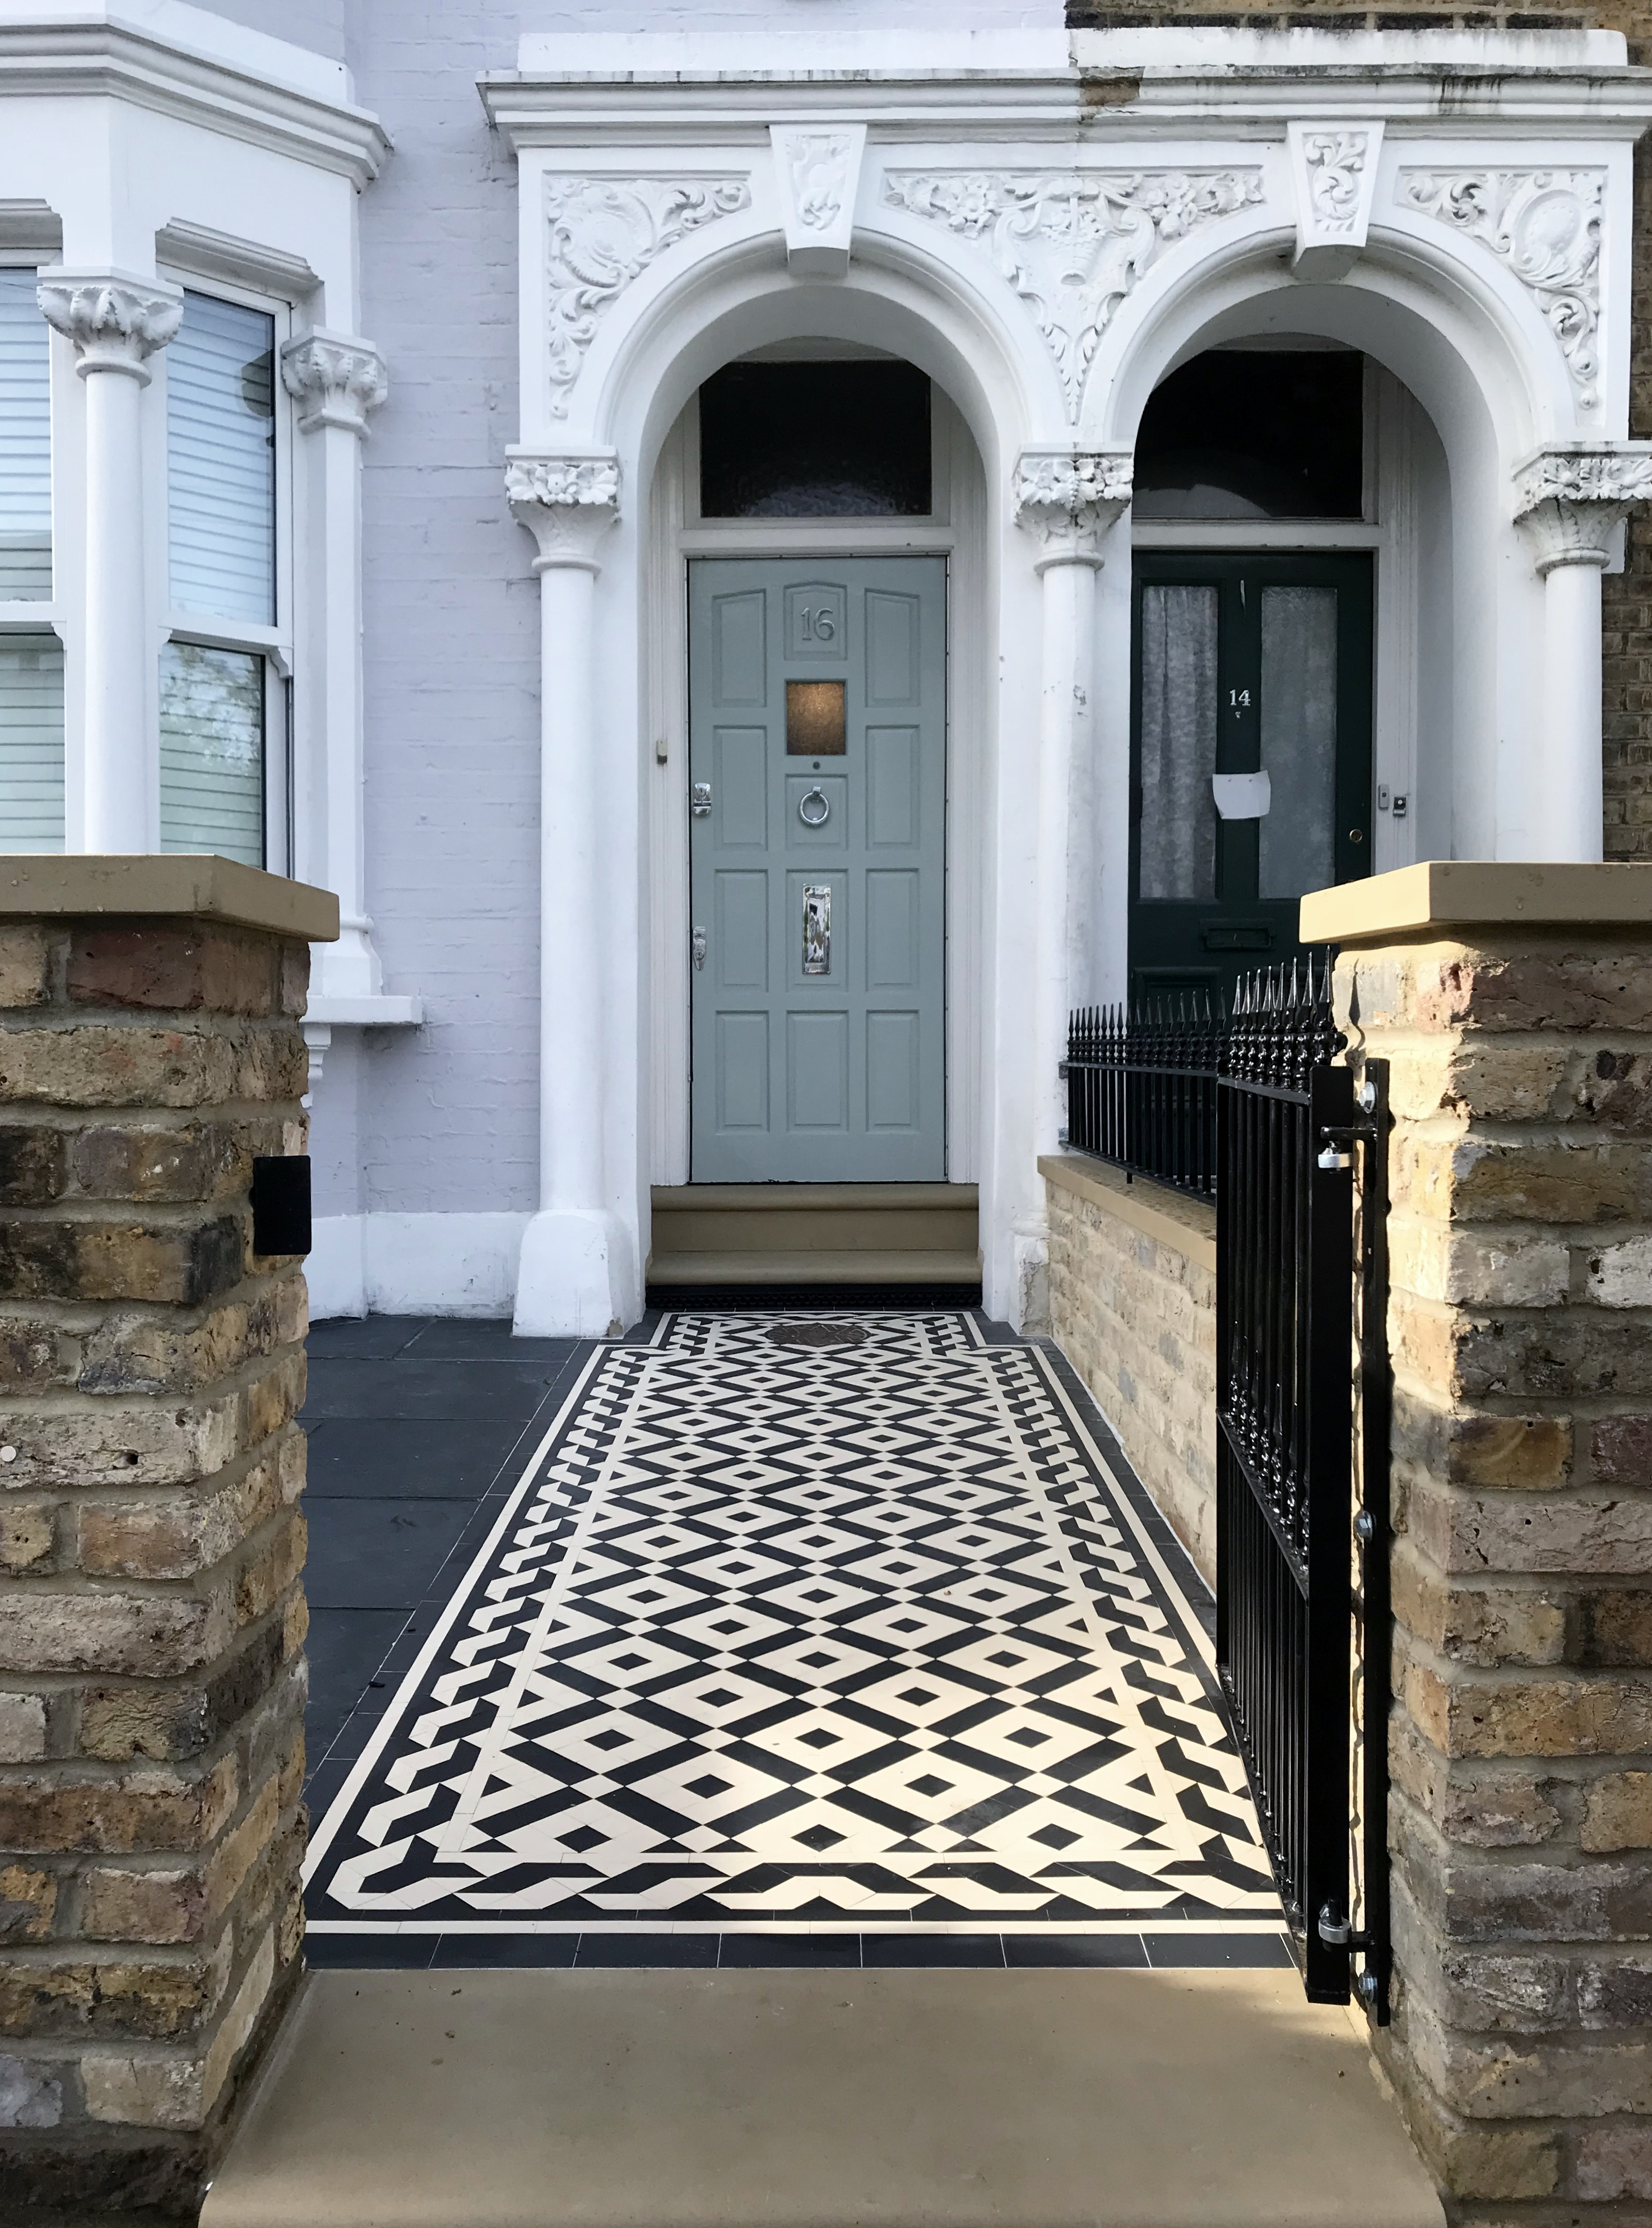 Mosaic Tiles Uk >> London Victorian Mosaic Tile Path London - London Garden